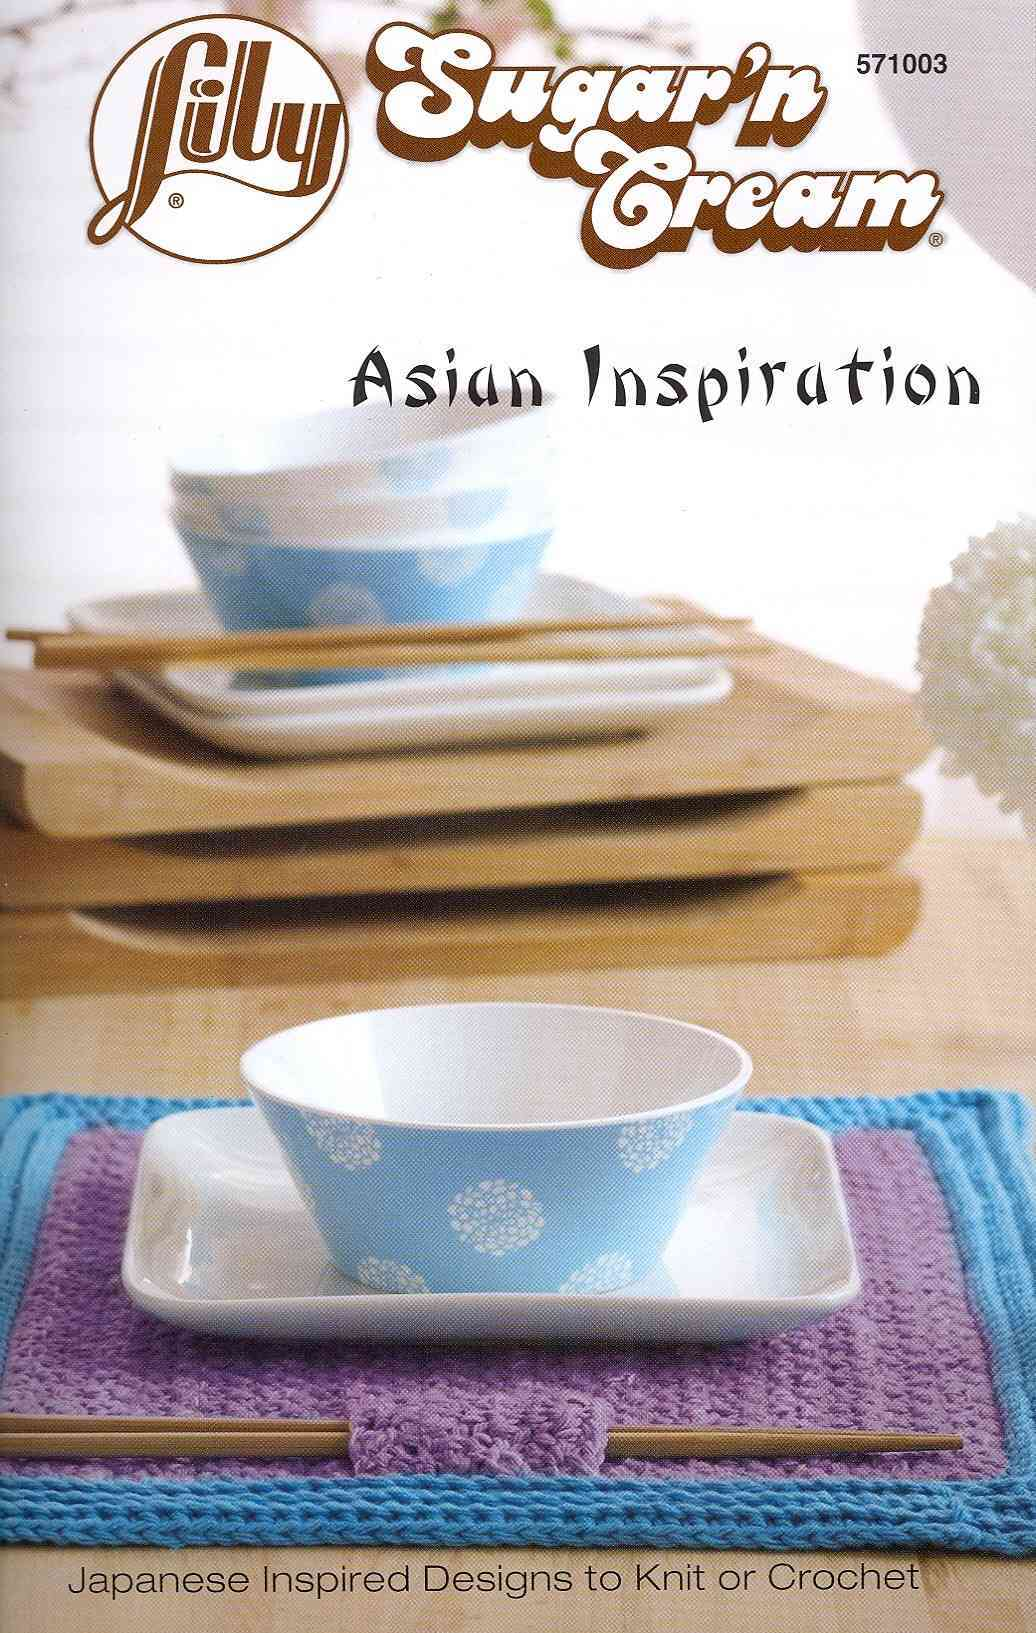 Asian Inspiration By Lily (EDT)